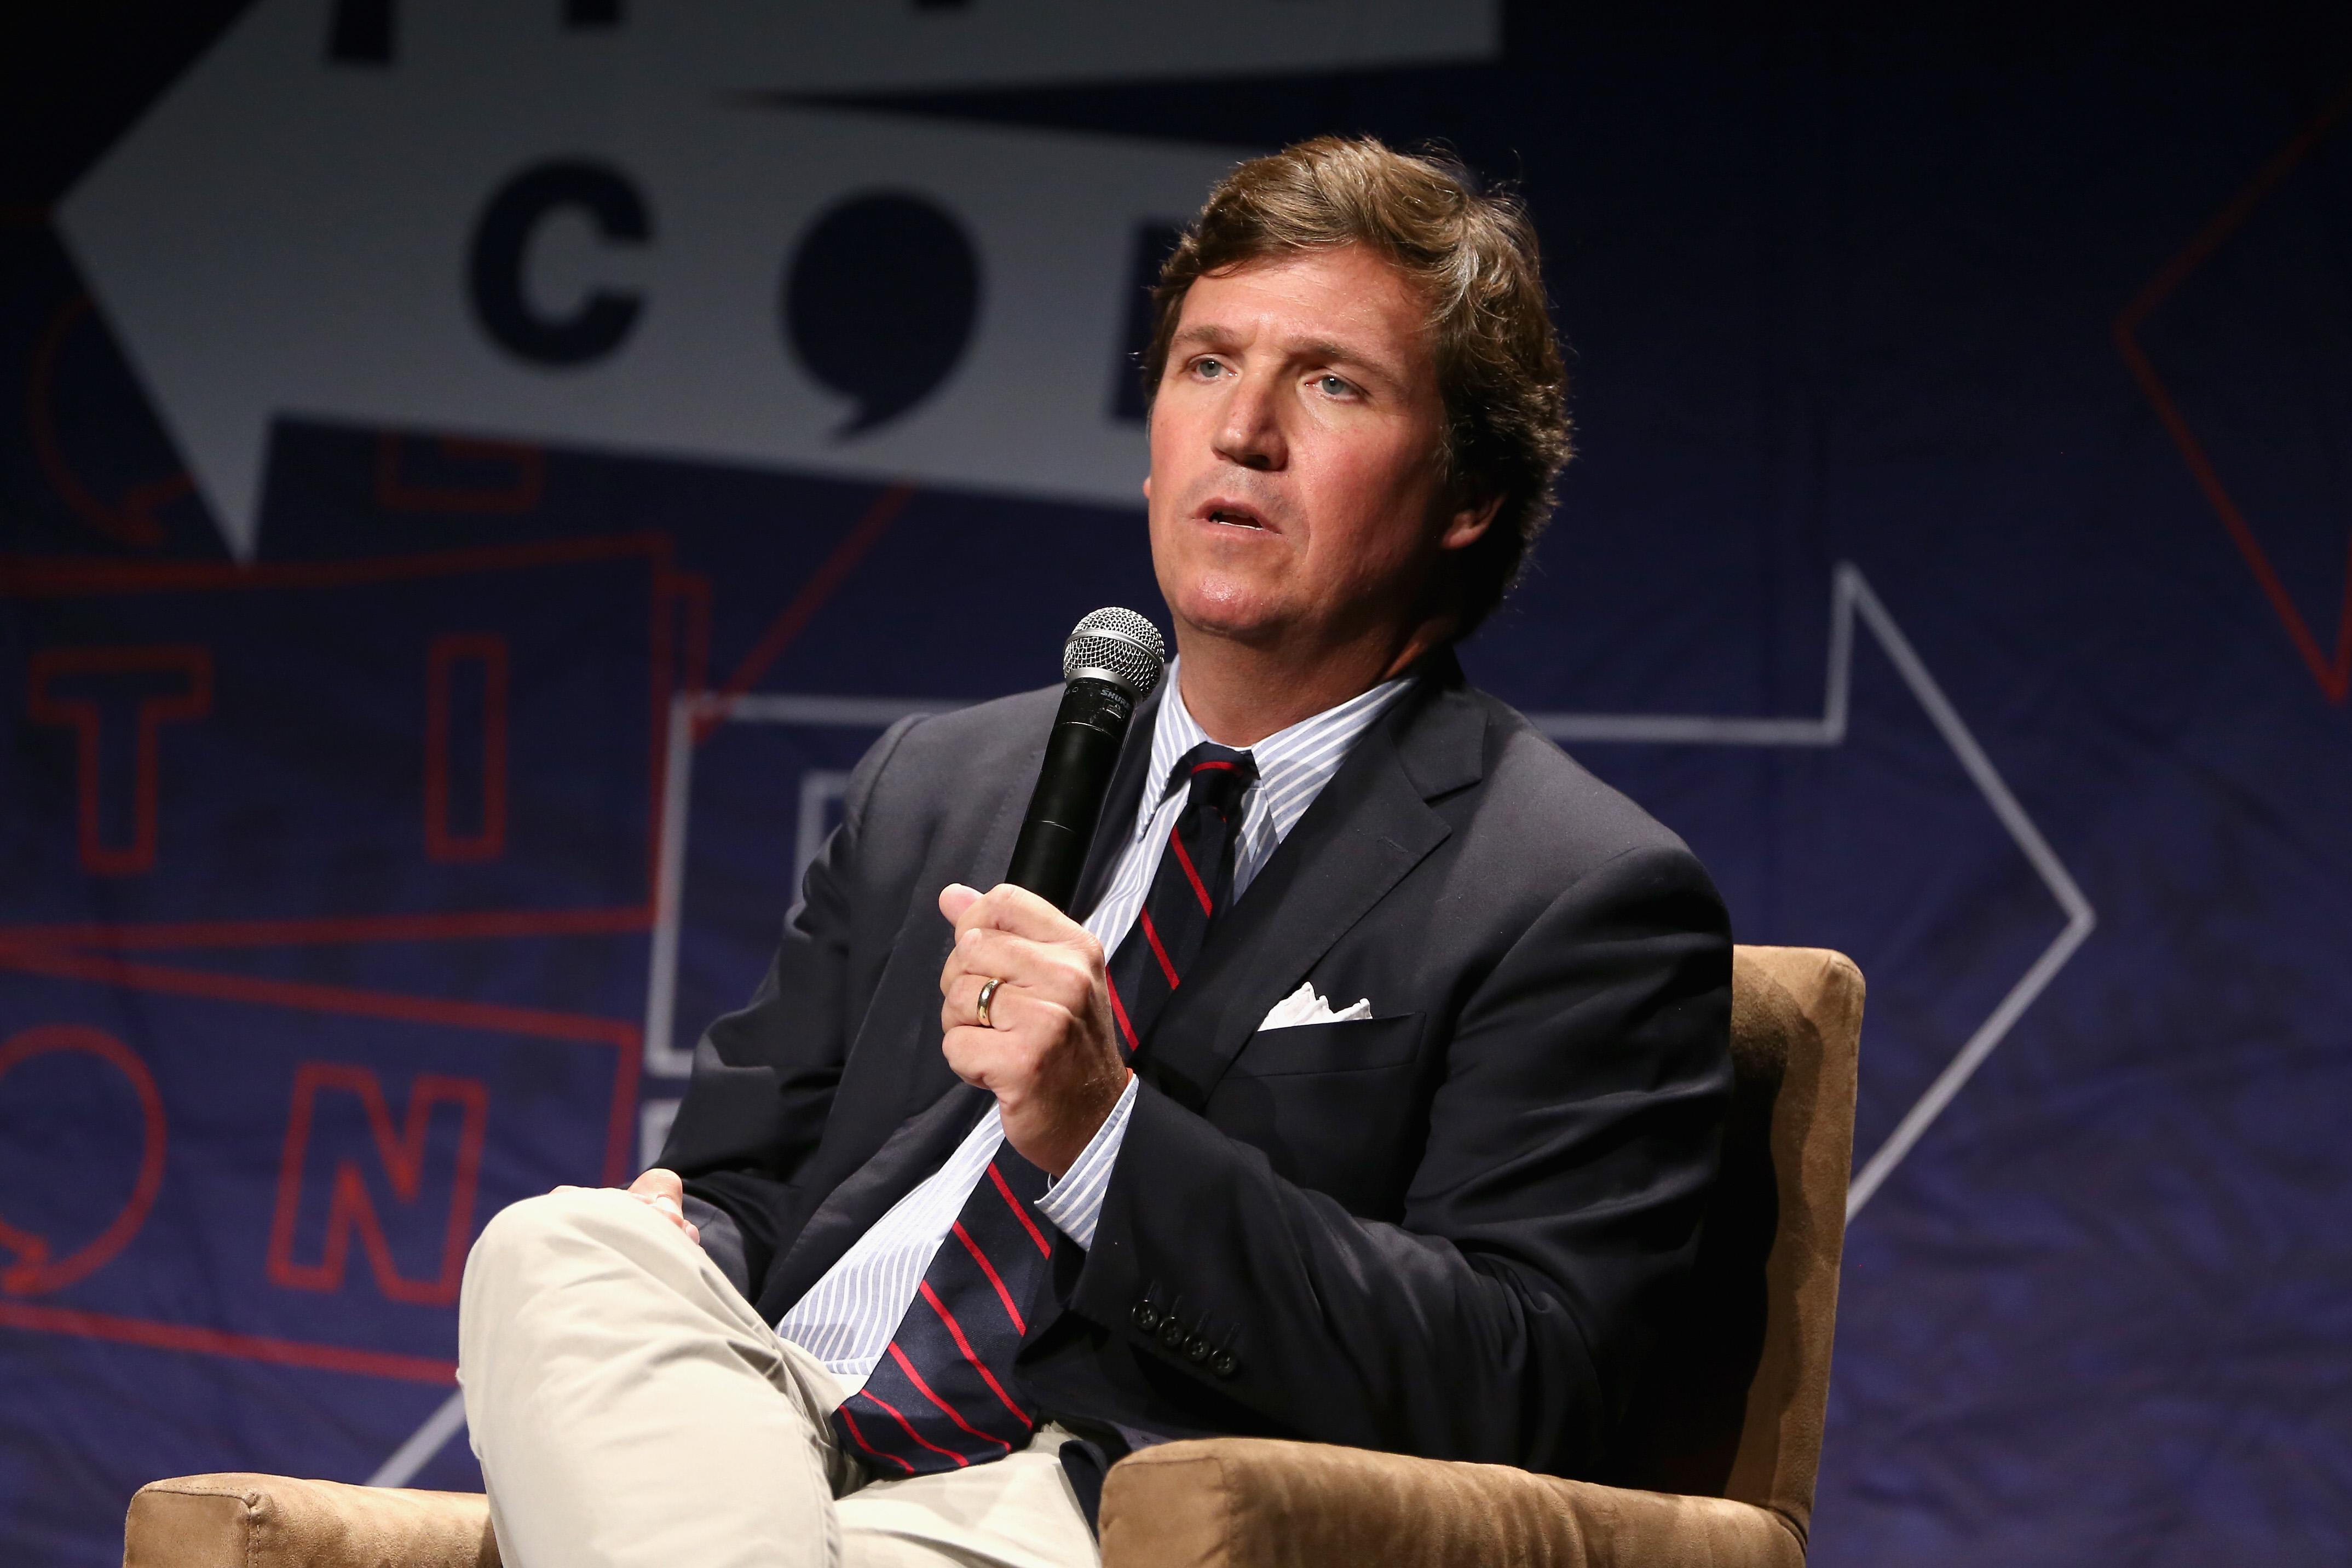 Tucker Carlson apologizes for false voter fraud claims in Georgia: 'We're always going to correct when we're wrong'